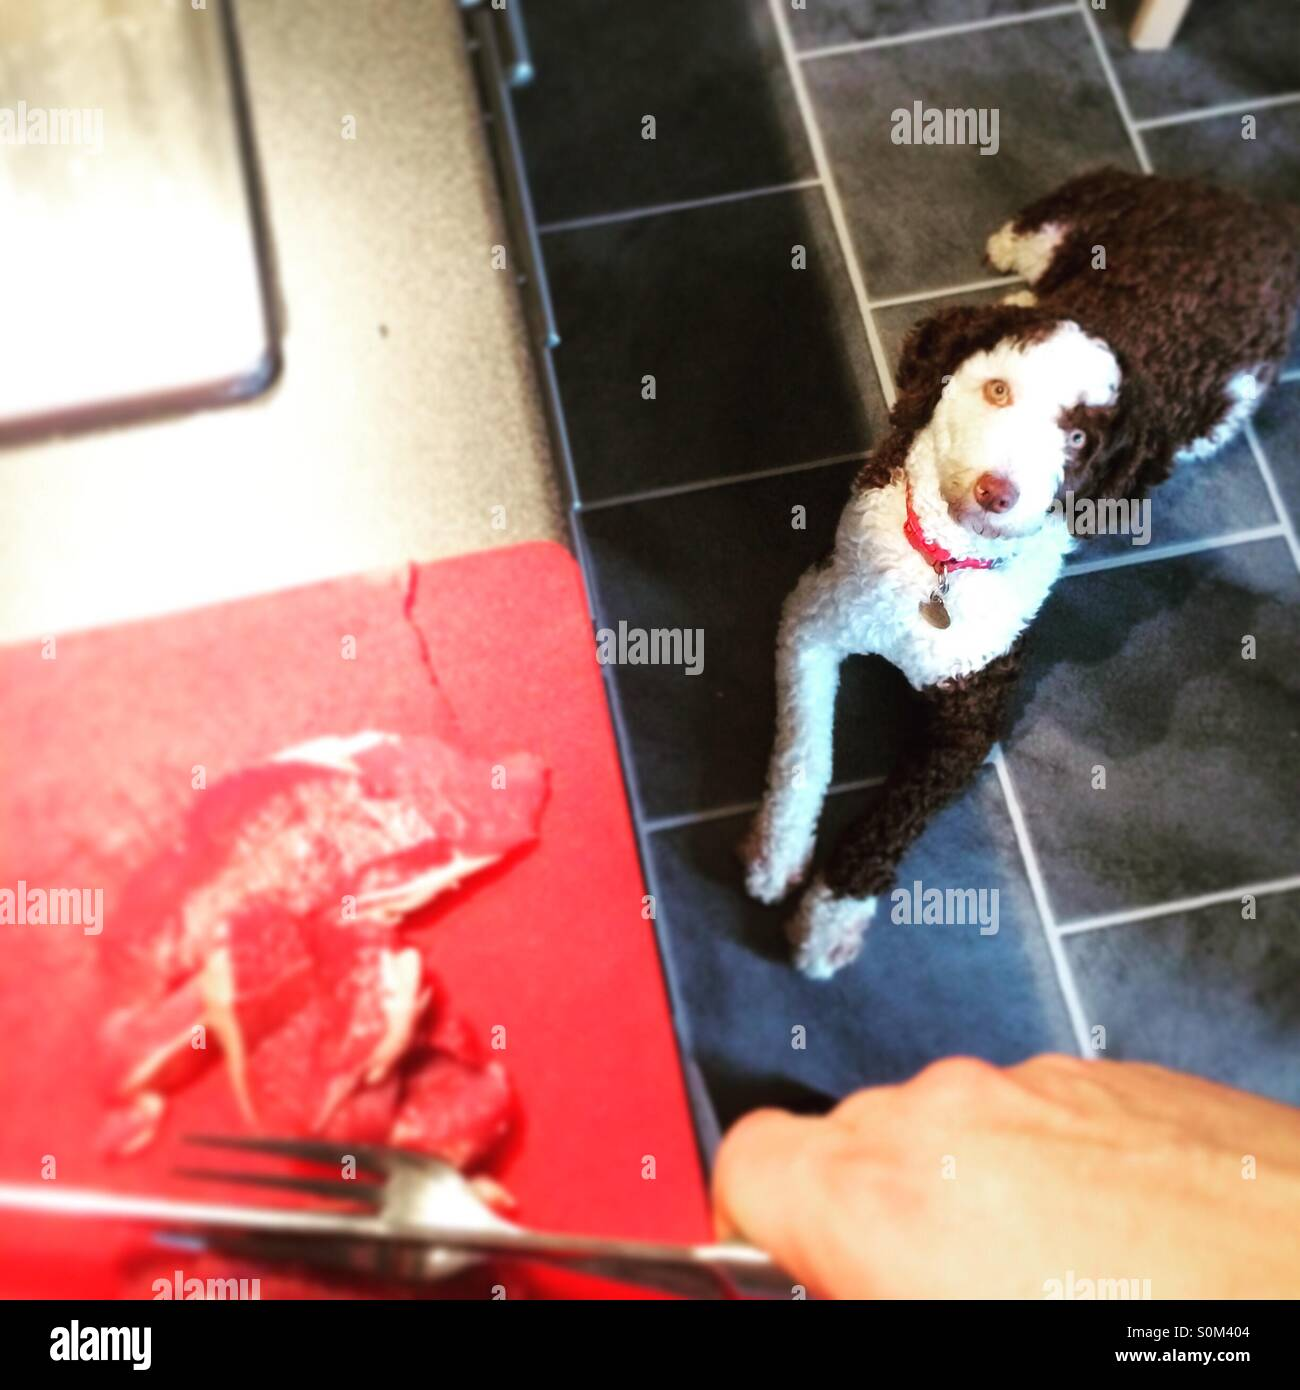 Dog watching meat being prepared Stock Photo